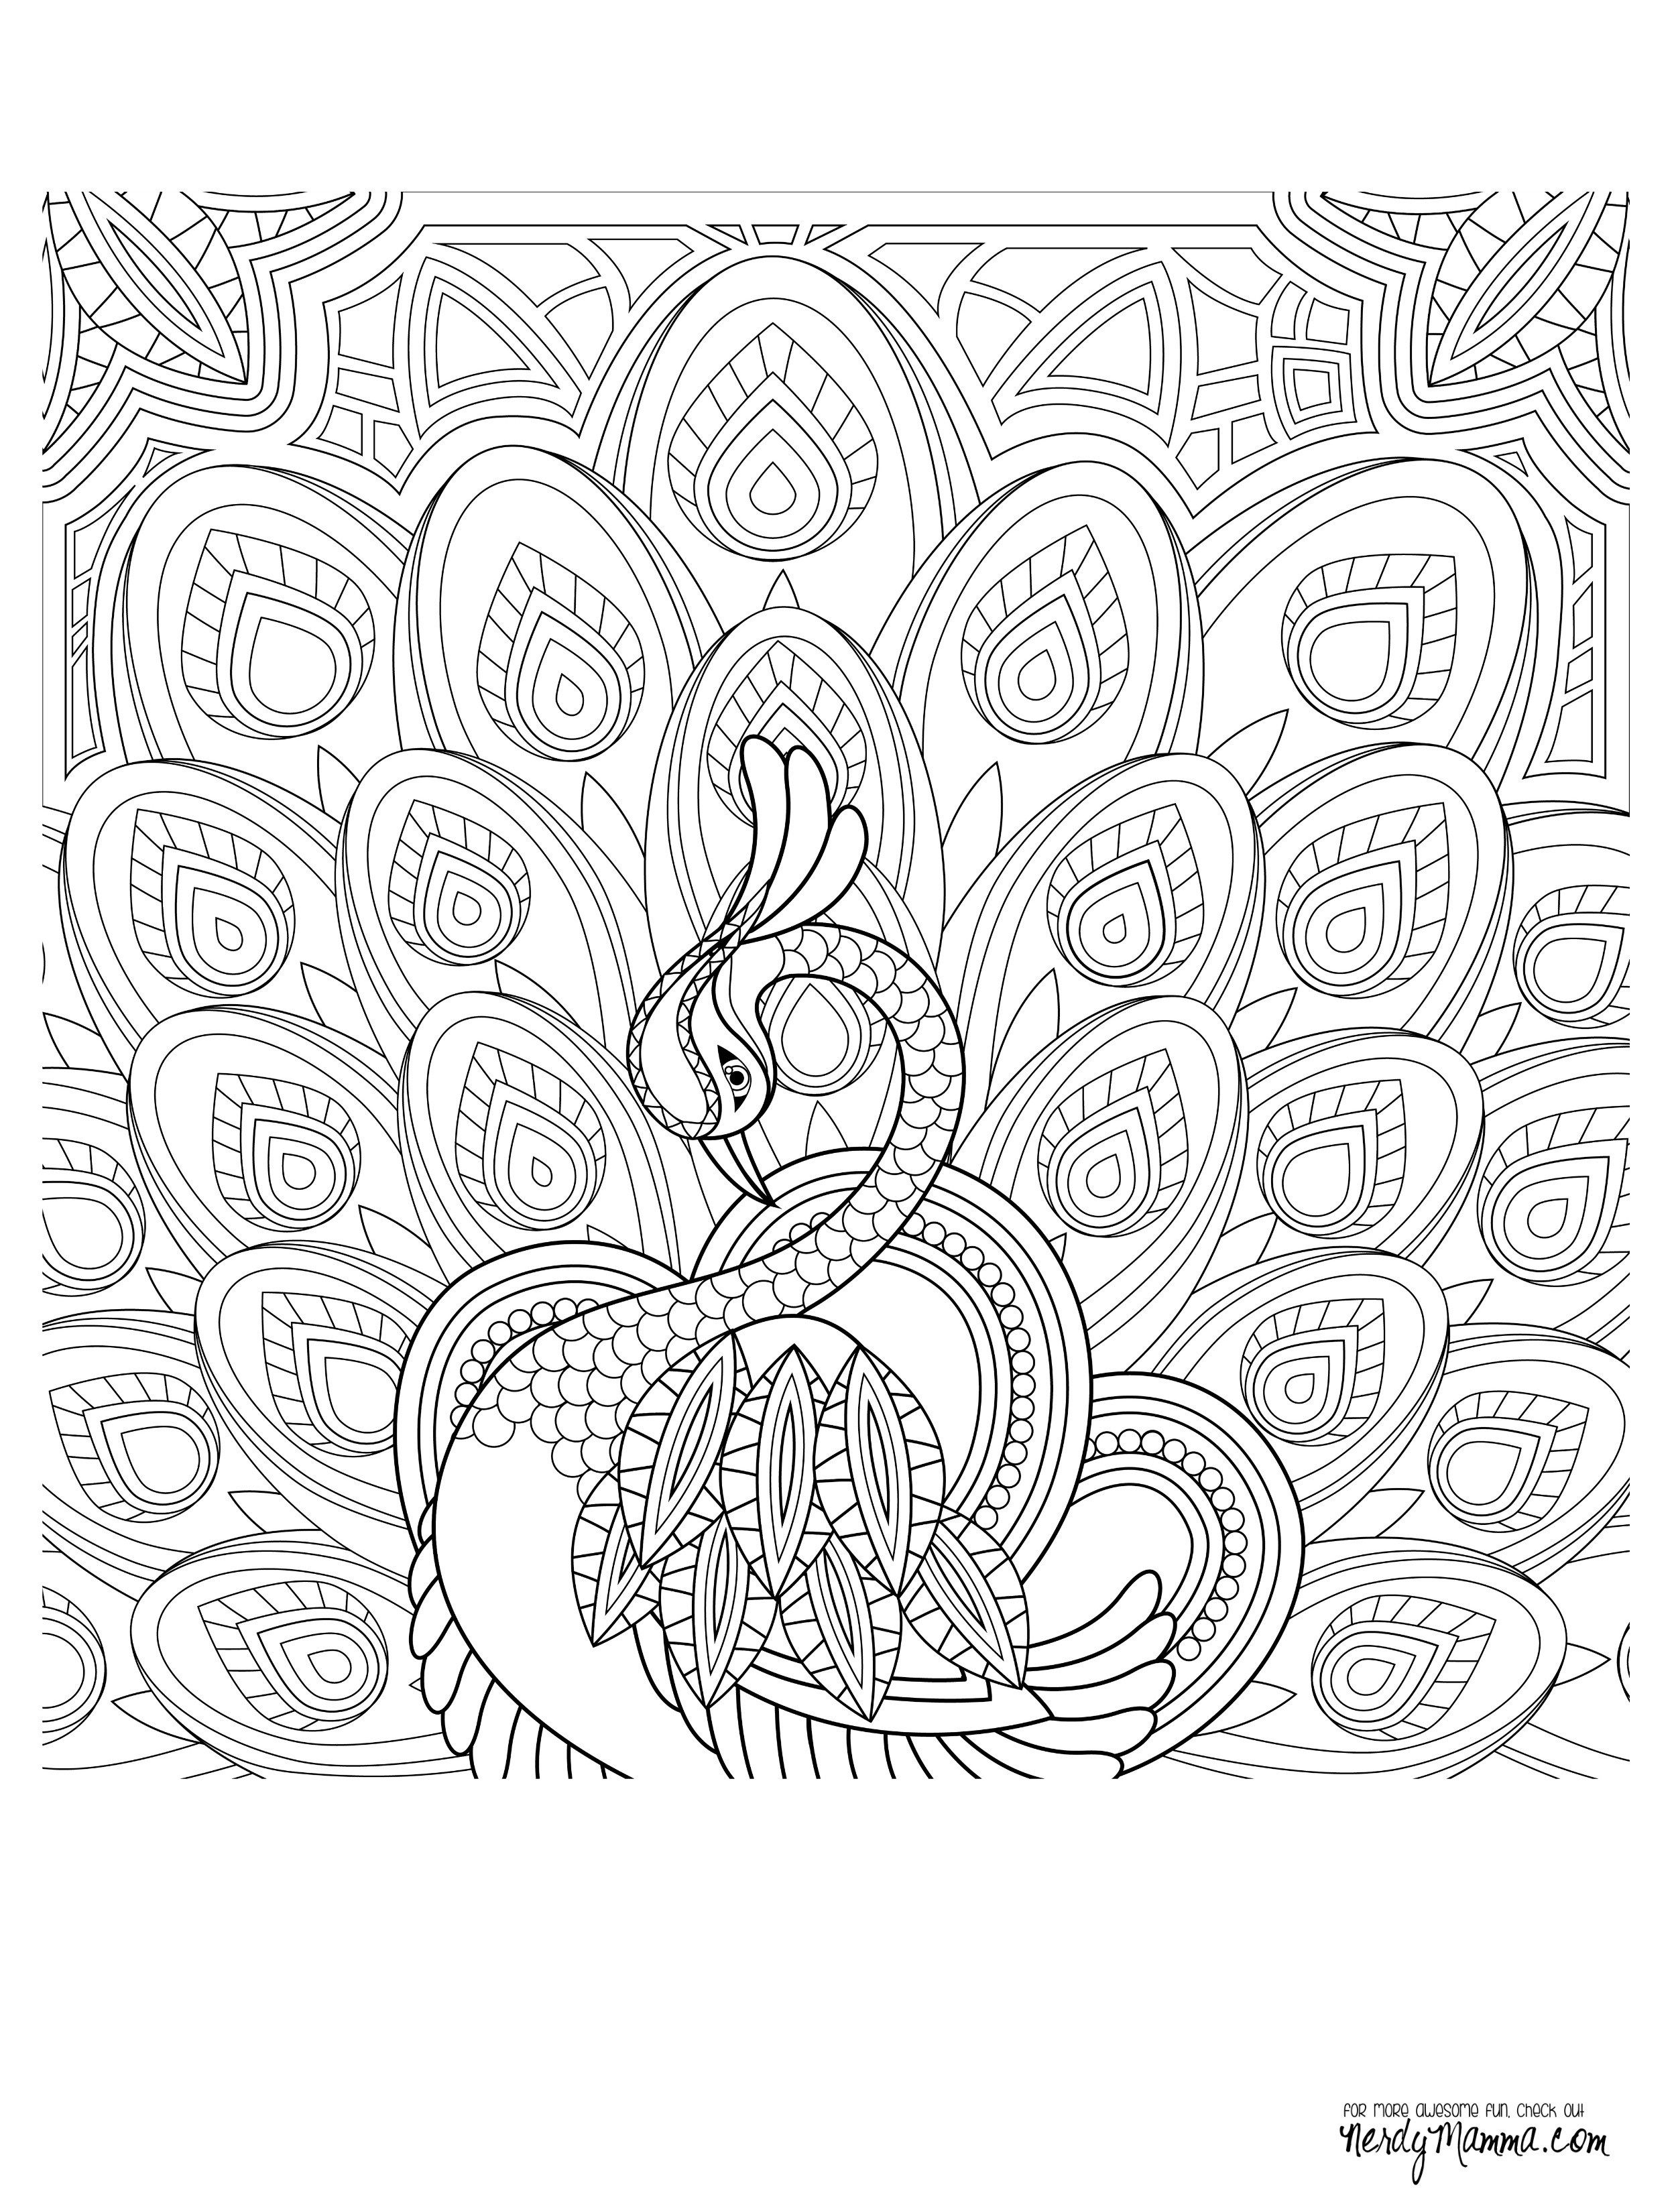 11 Free Printable Adult Coloring Pages | Ausmalbilder, Ausmalen und ...